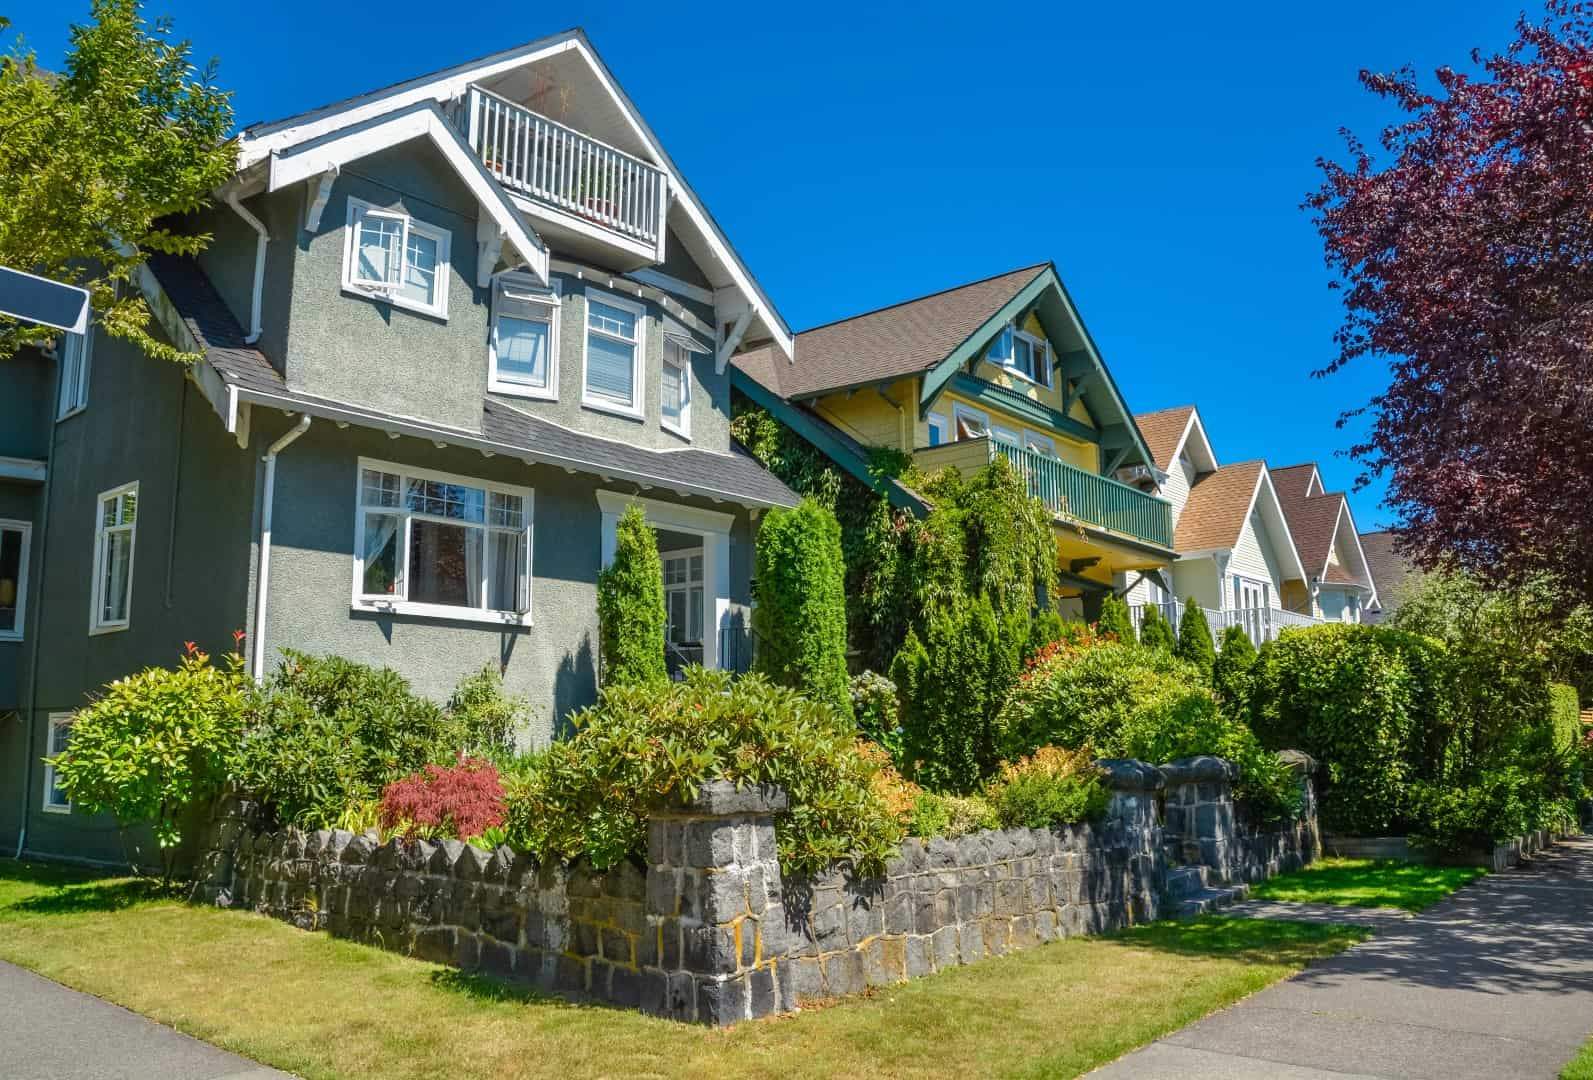 Row of residential homes in Vancouver, BC